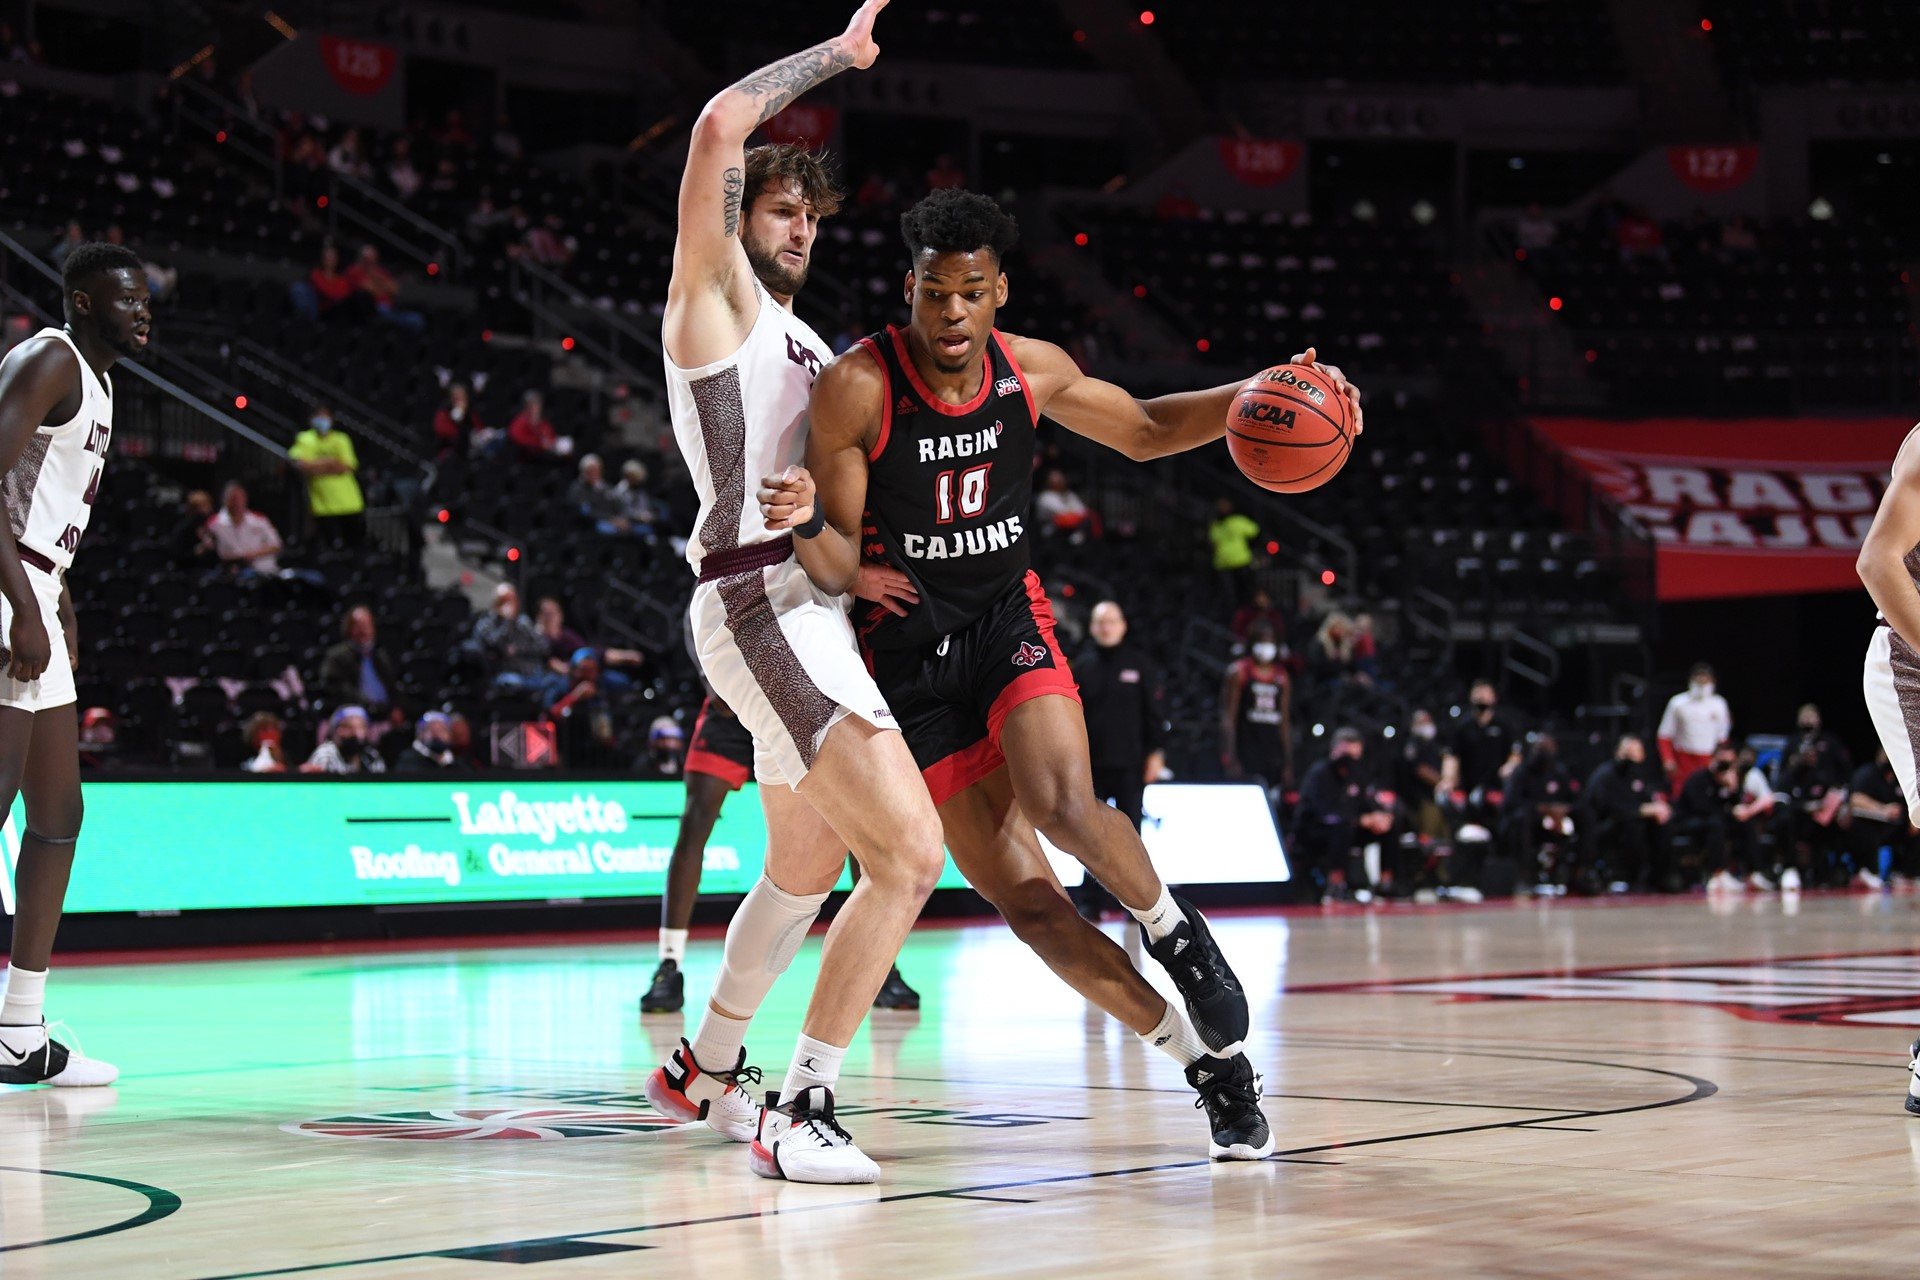 Theo Akwuba is one of the most feared players in the Sun Belt. He'll lead Louisiana basketball.